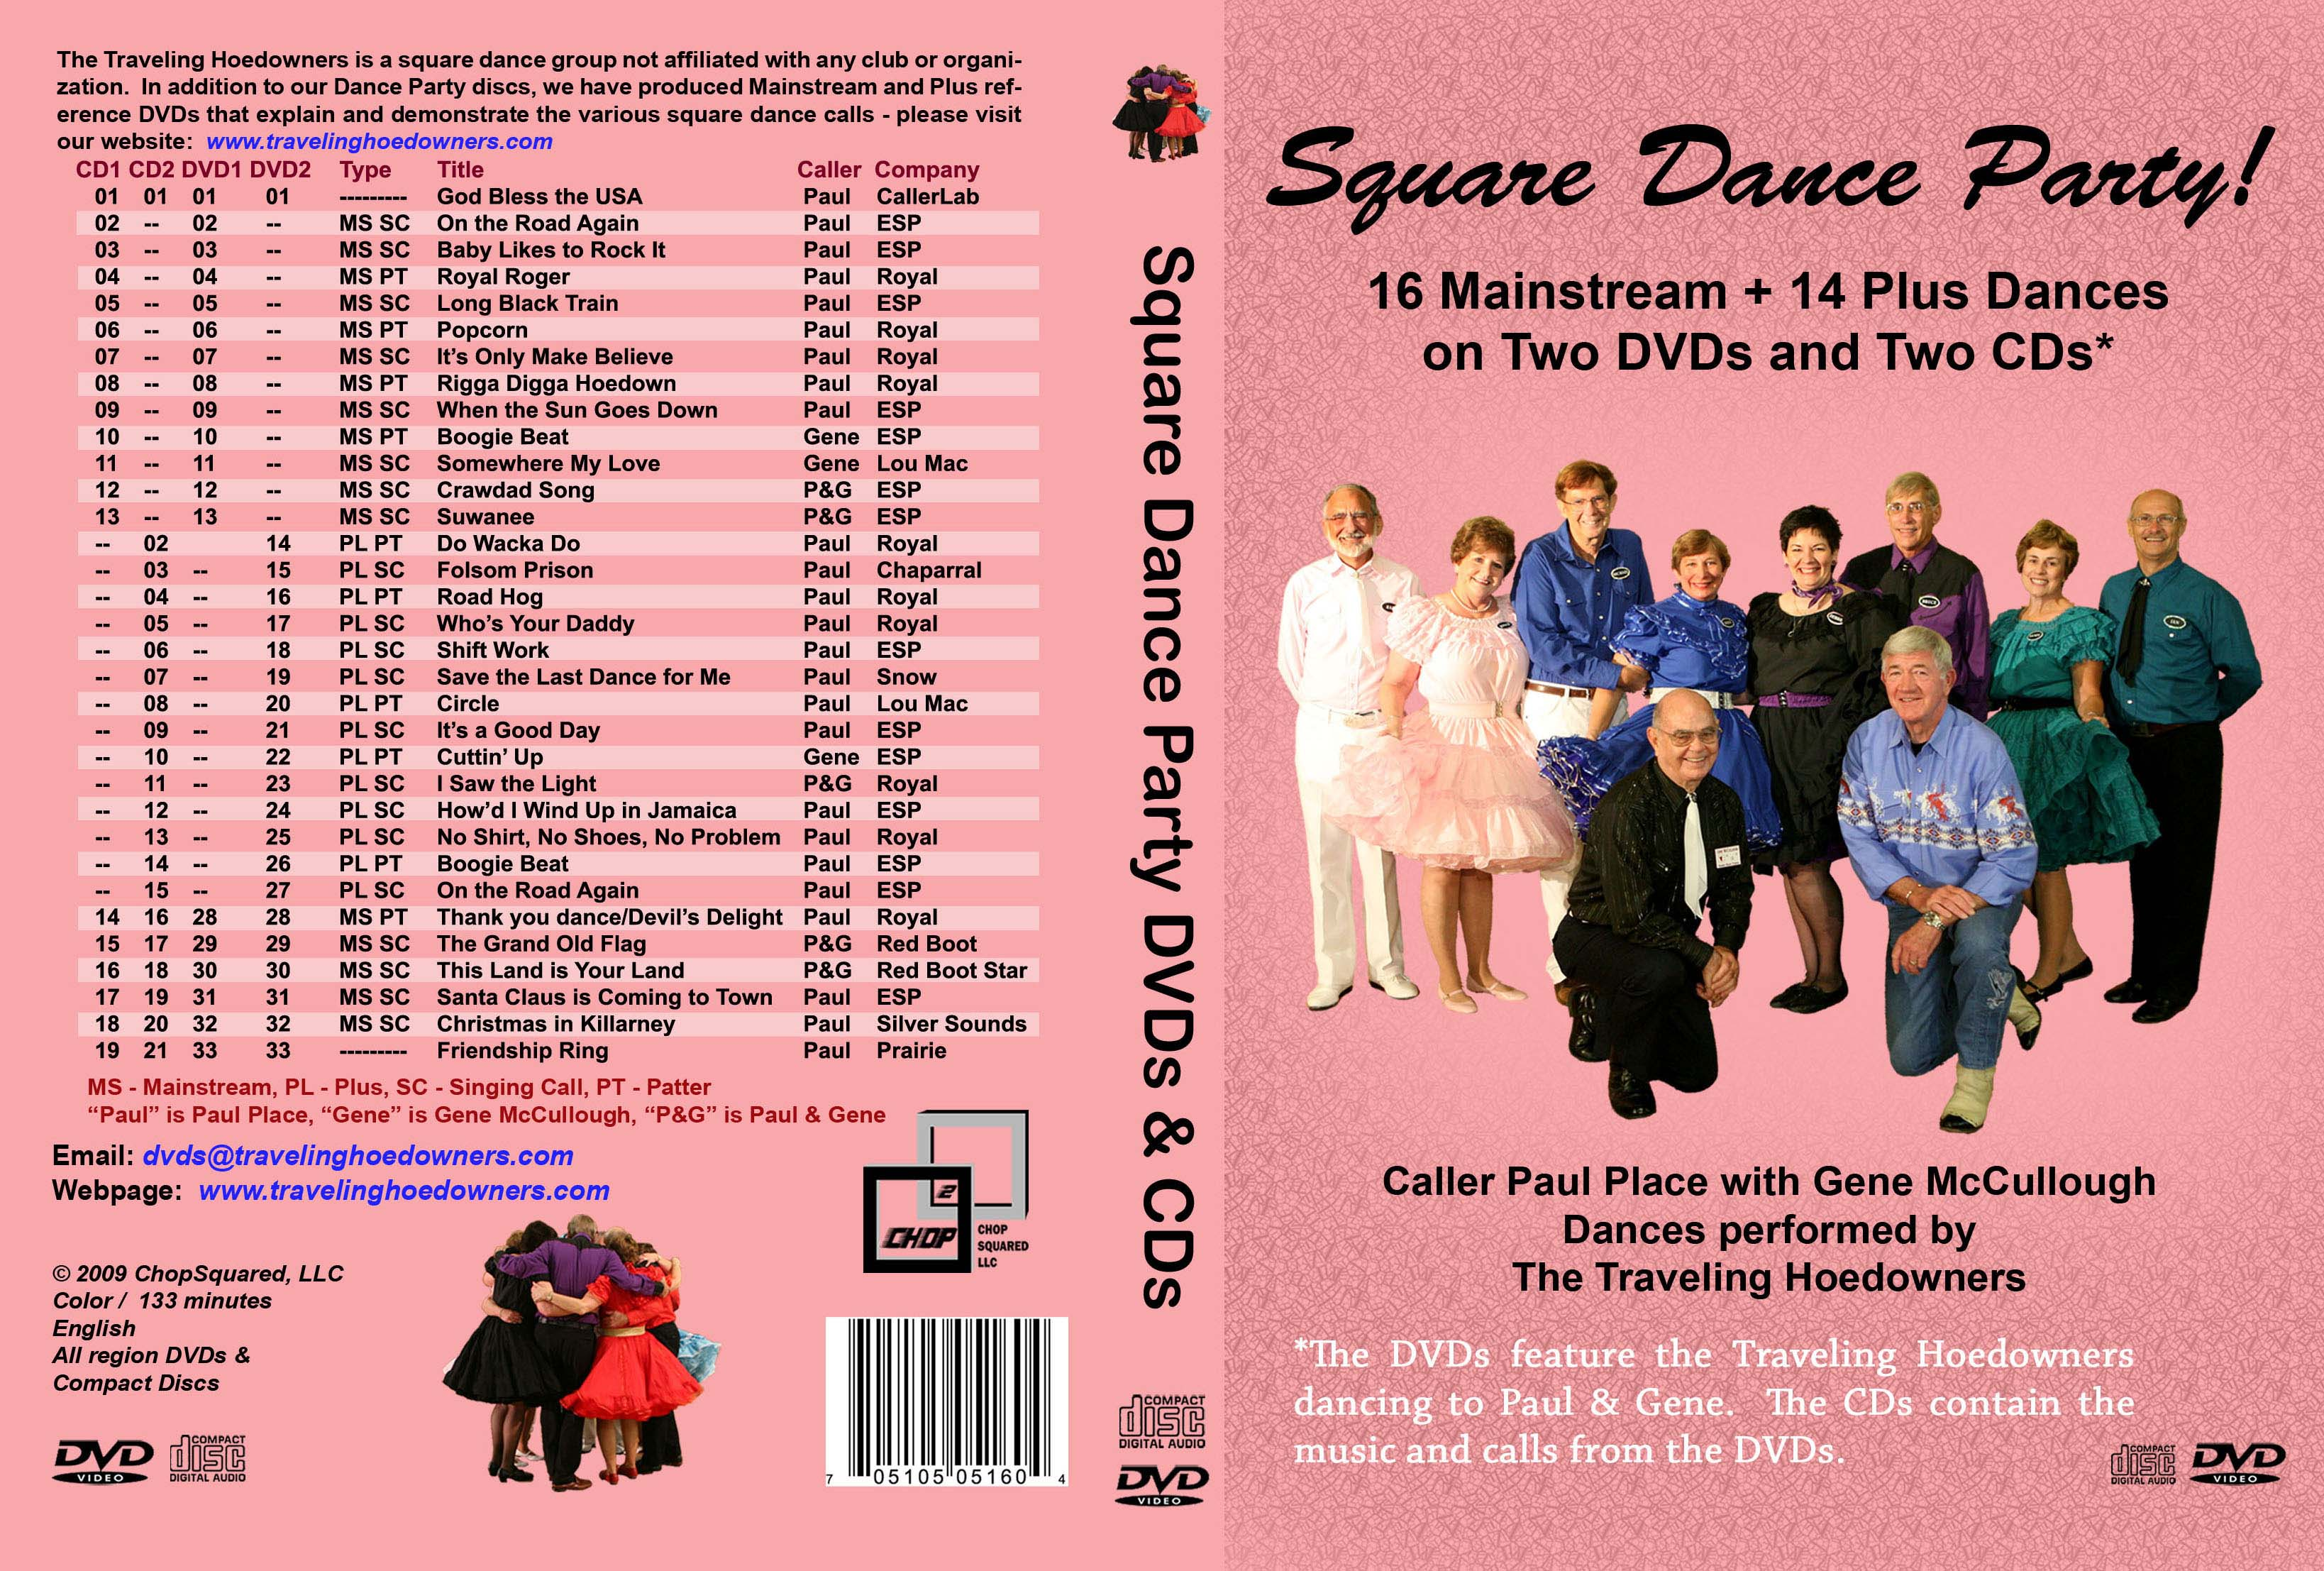 Dance Party 2-DVD/2-CD Jacket